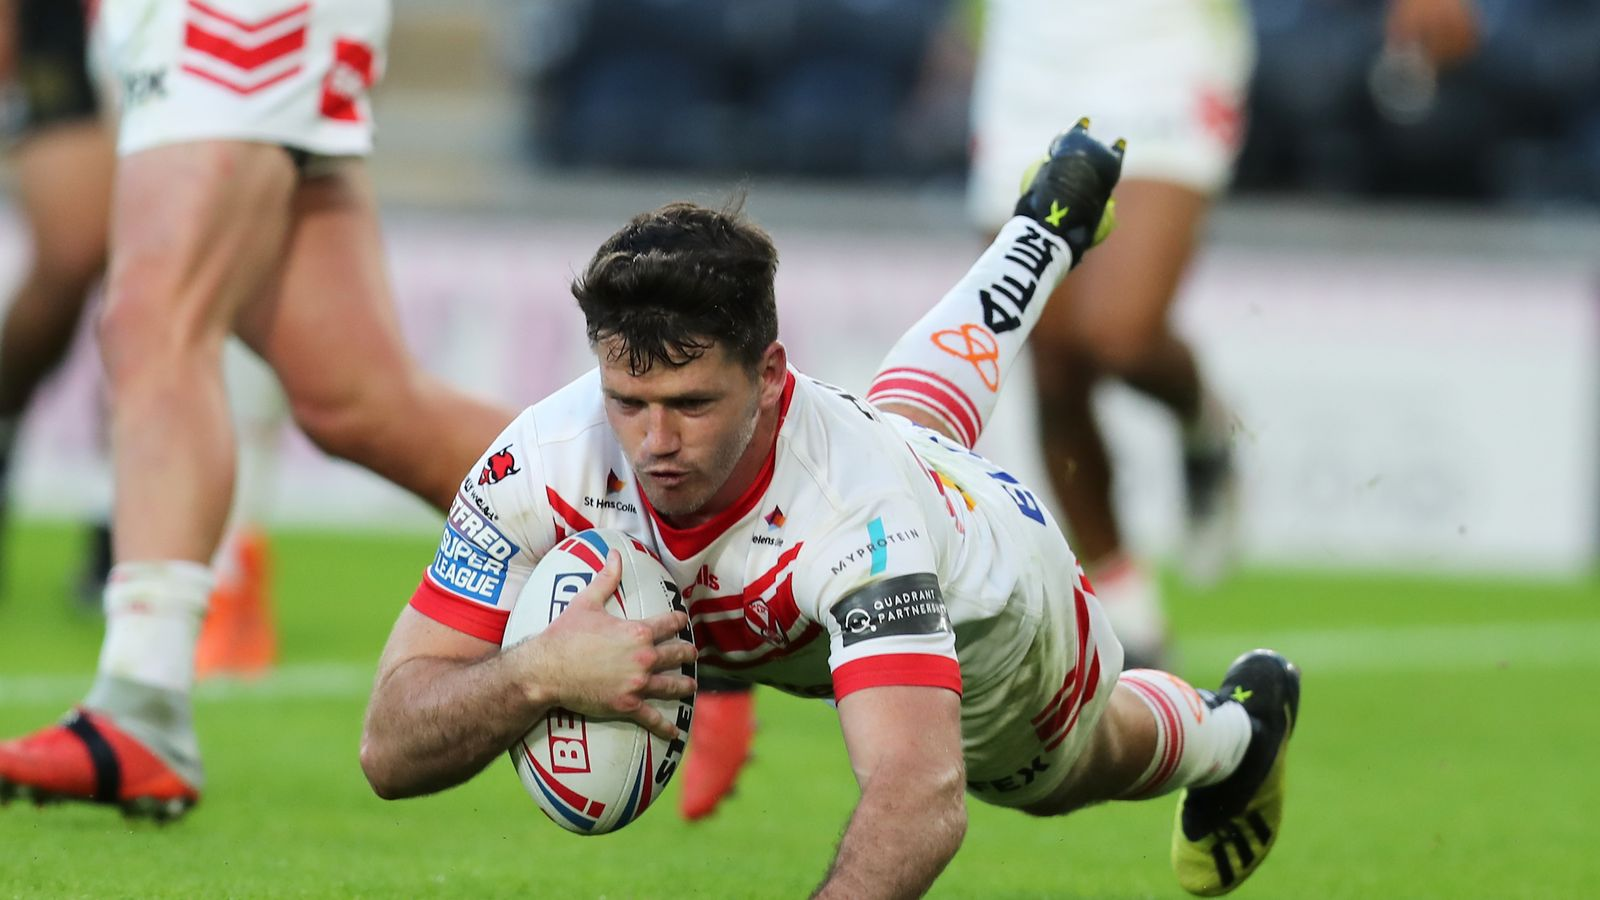 Match Report - Hull 12 - 40 St Helens